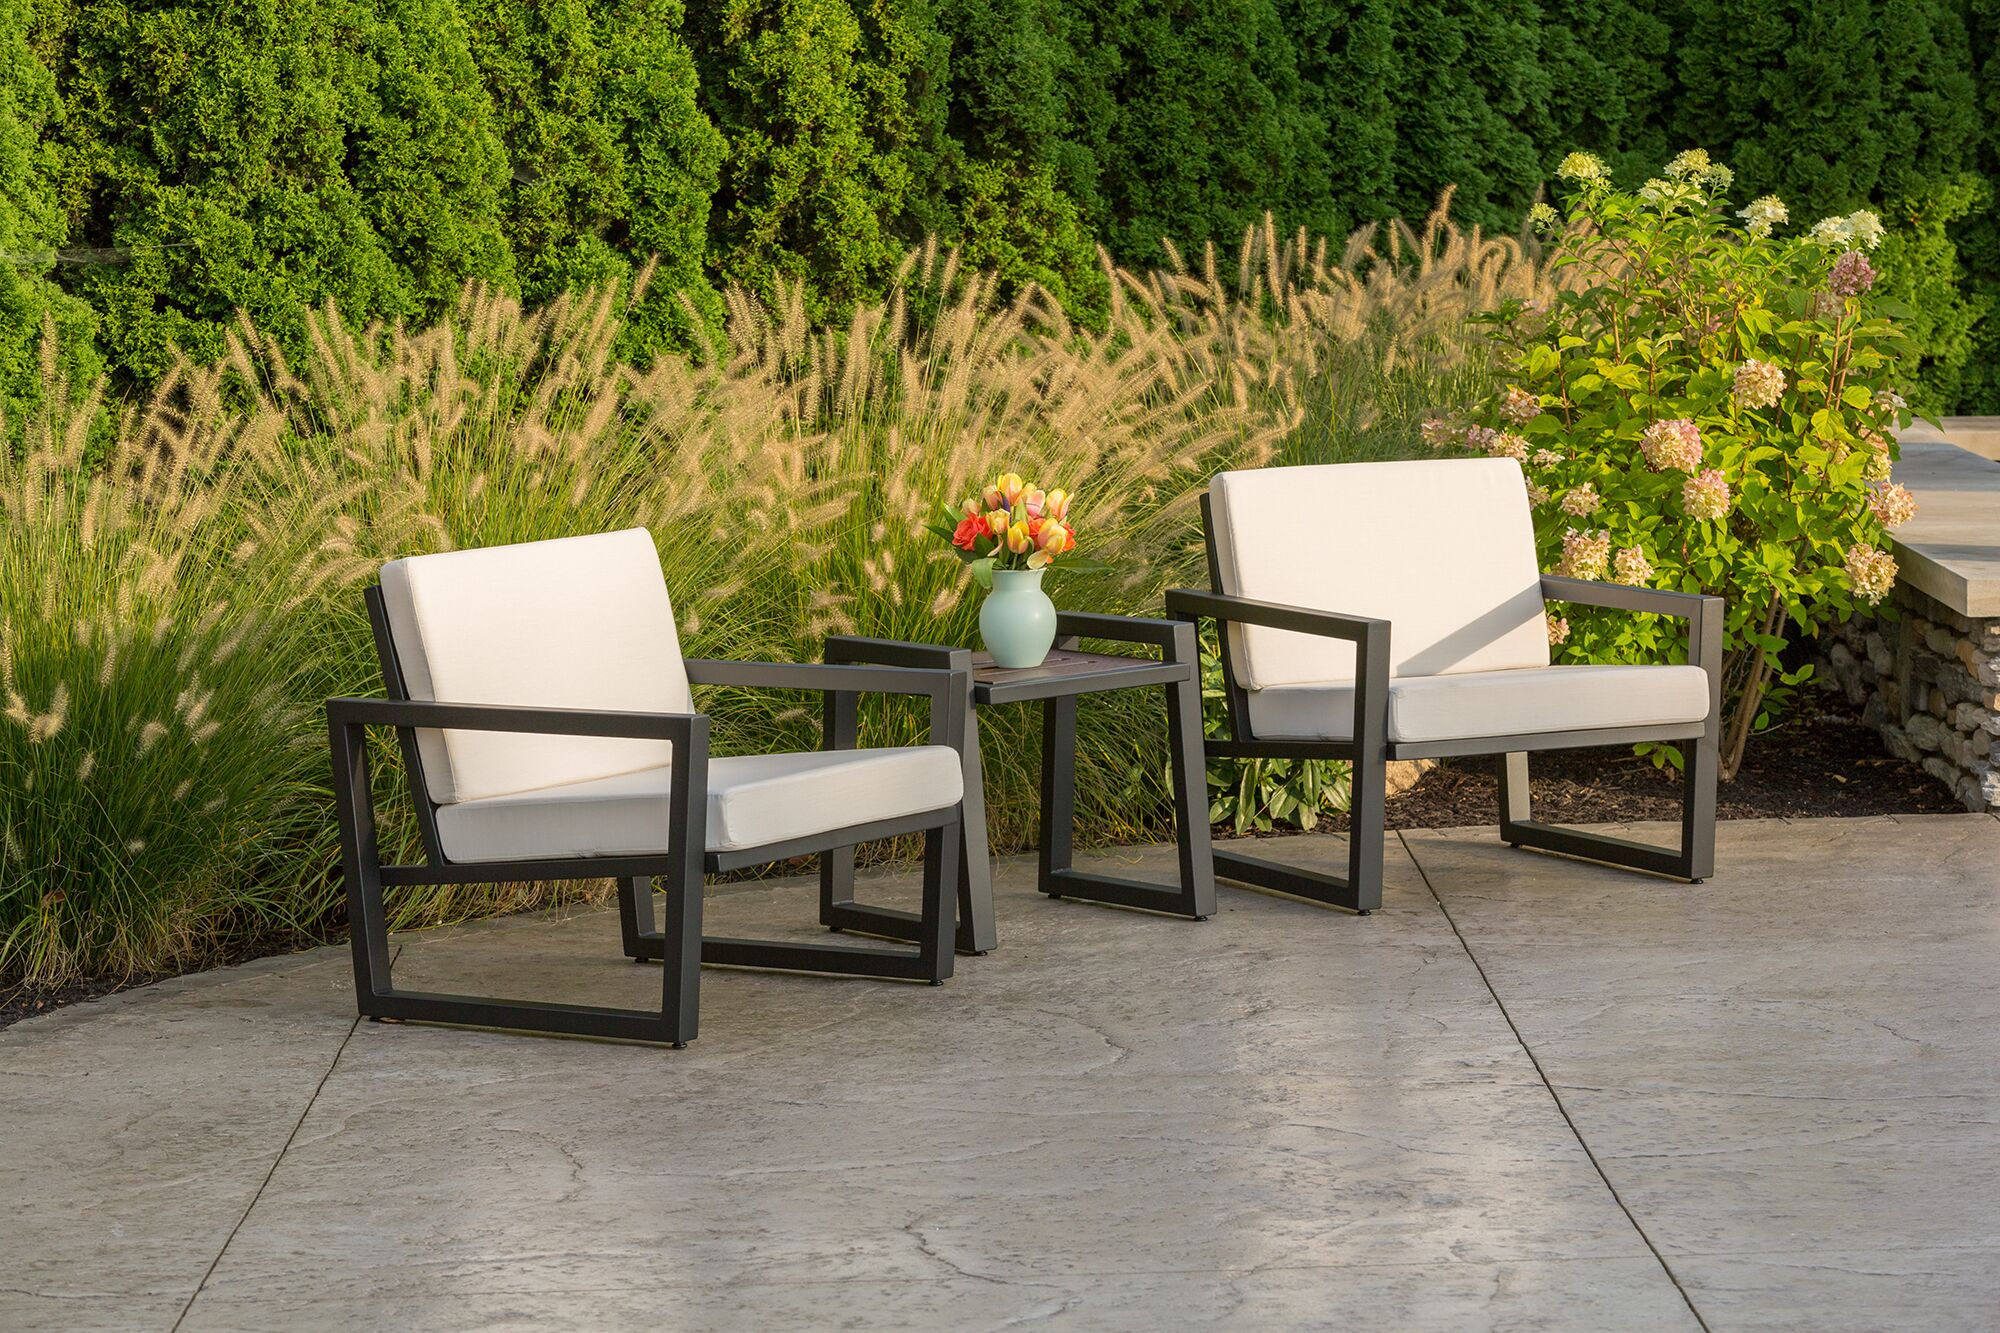 Vero 3 Piece Sunbrella Conversation Set with Cushions Color: Gloss Silver, Fabric: Charcoal